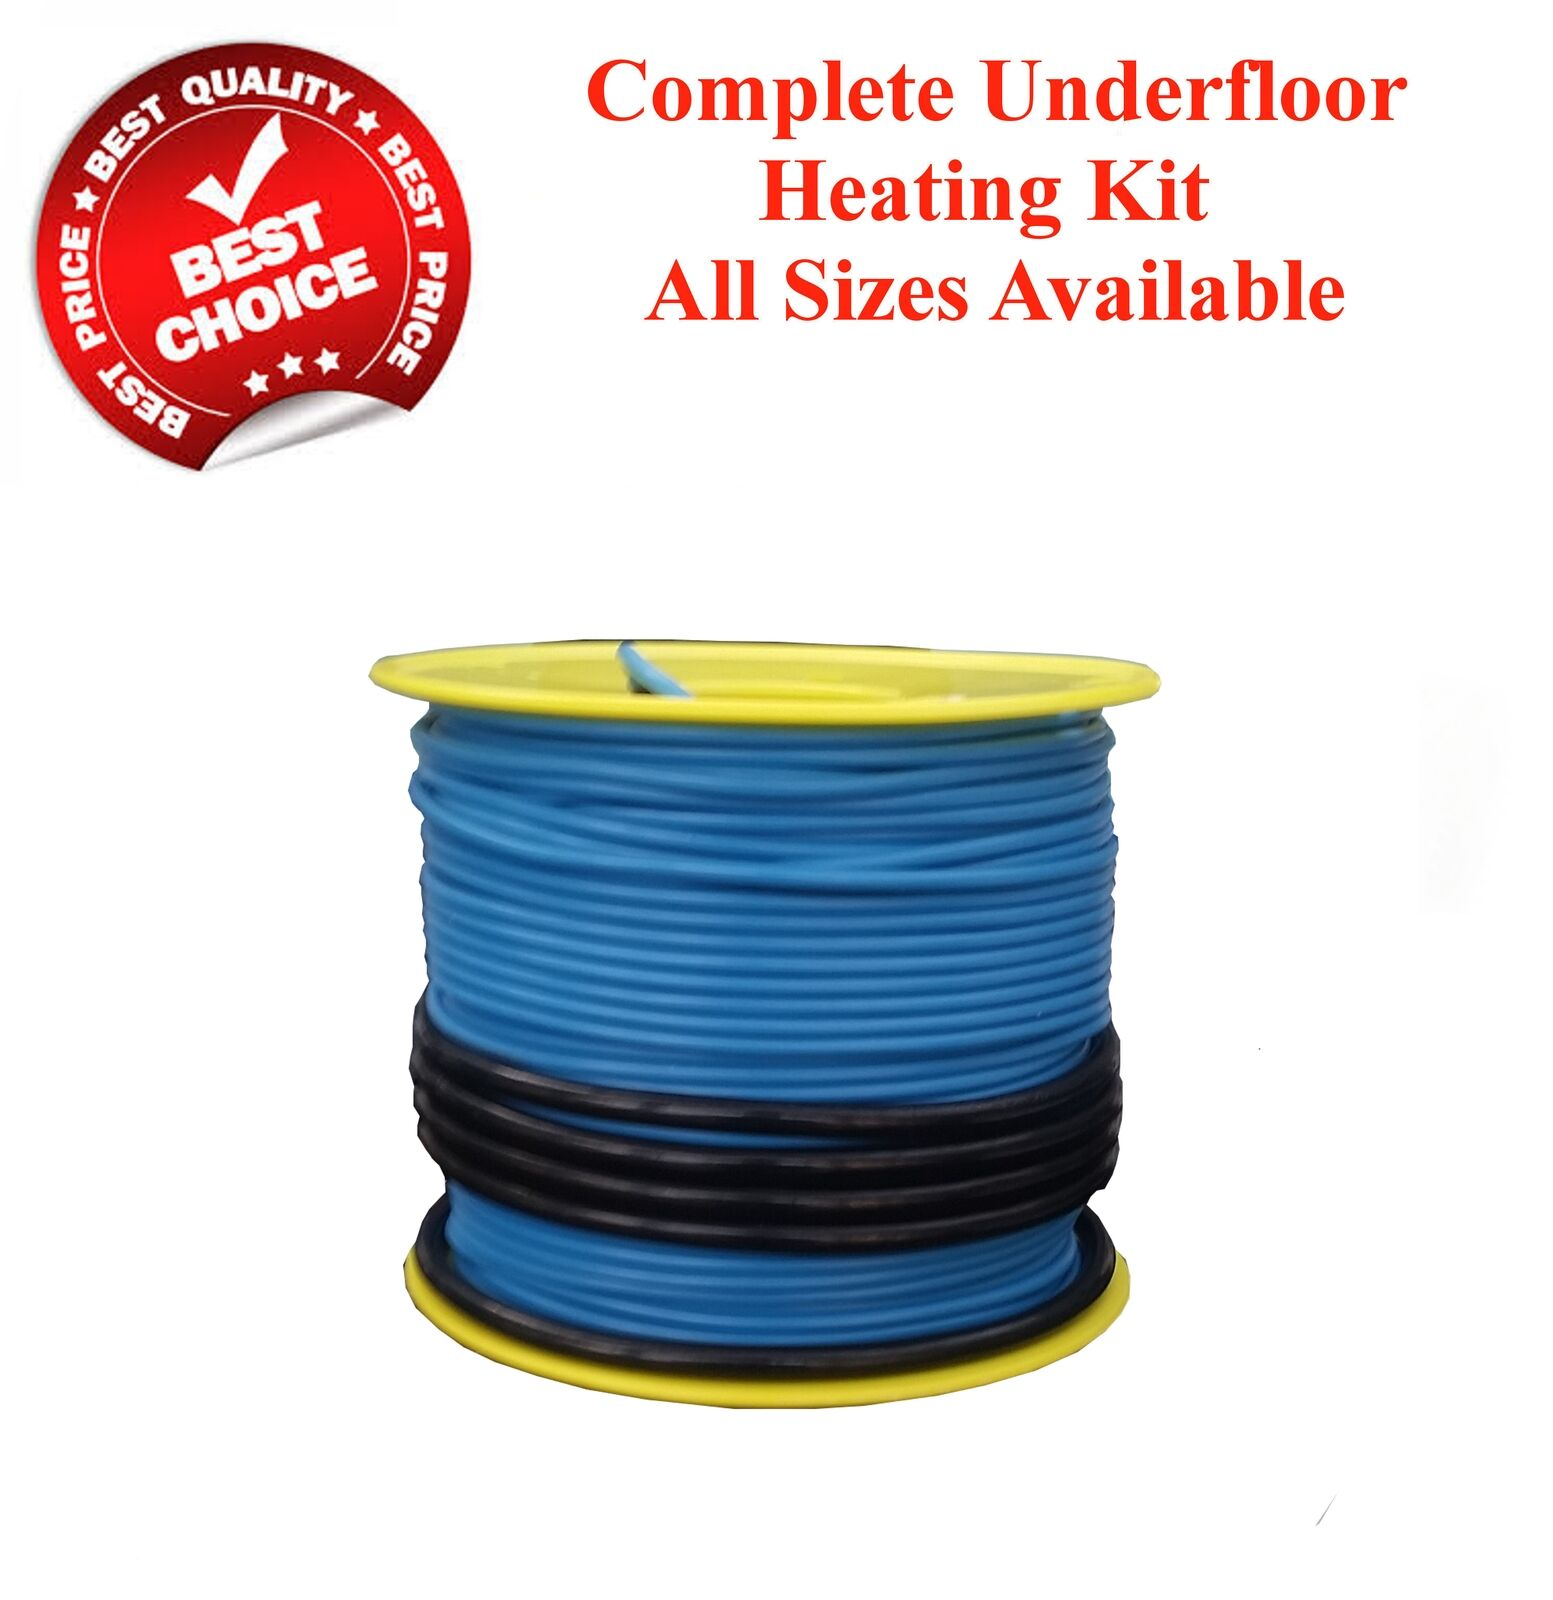 Electric underfloor heating loose cable kit all sizes in this ...